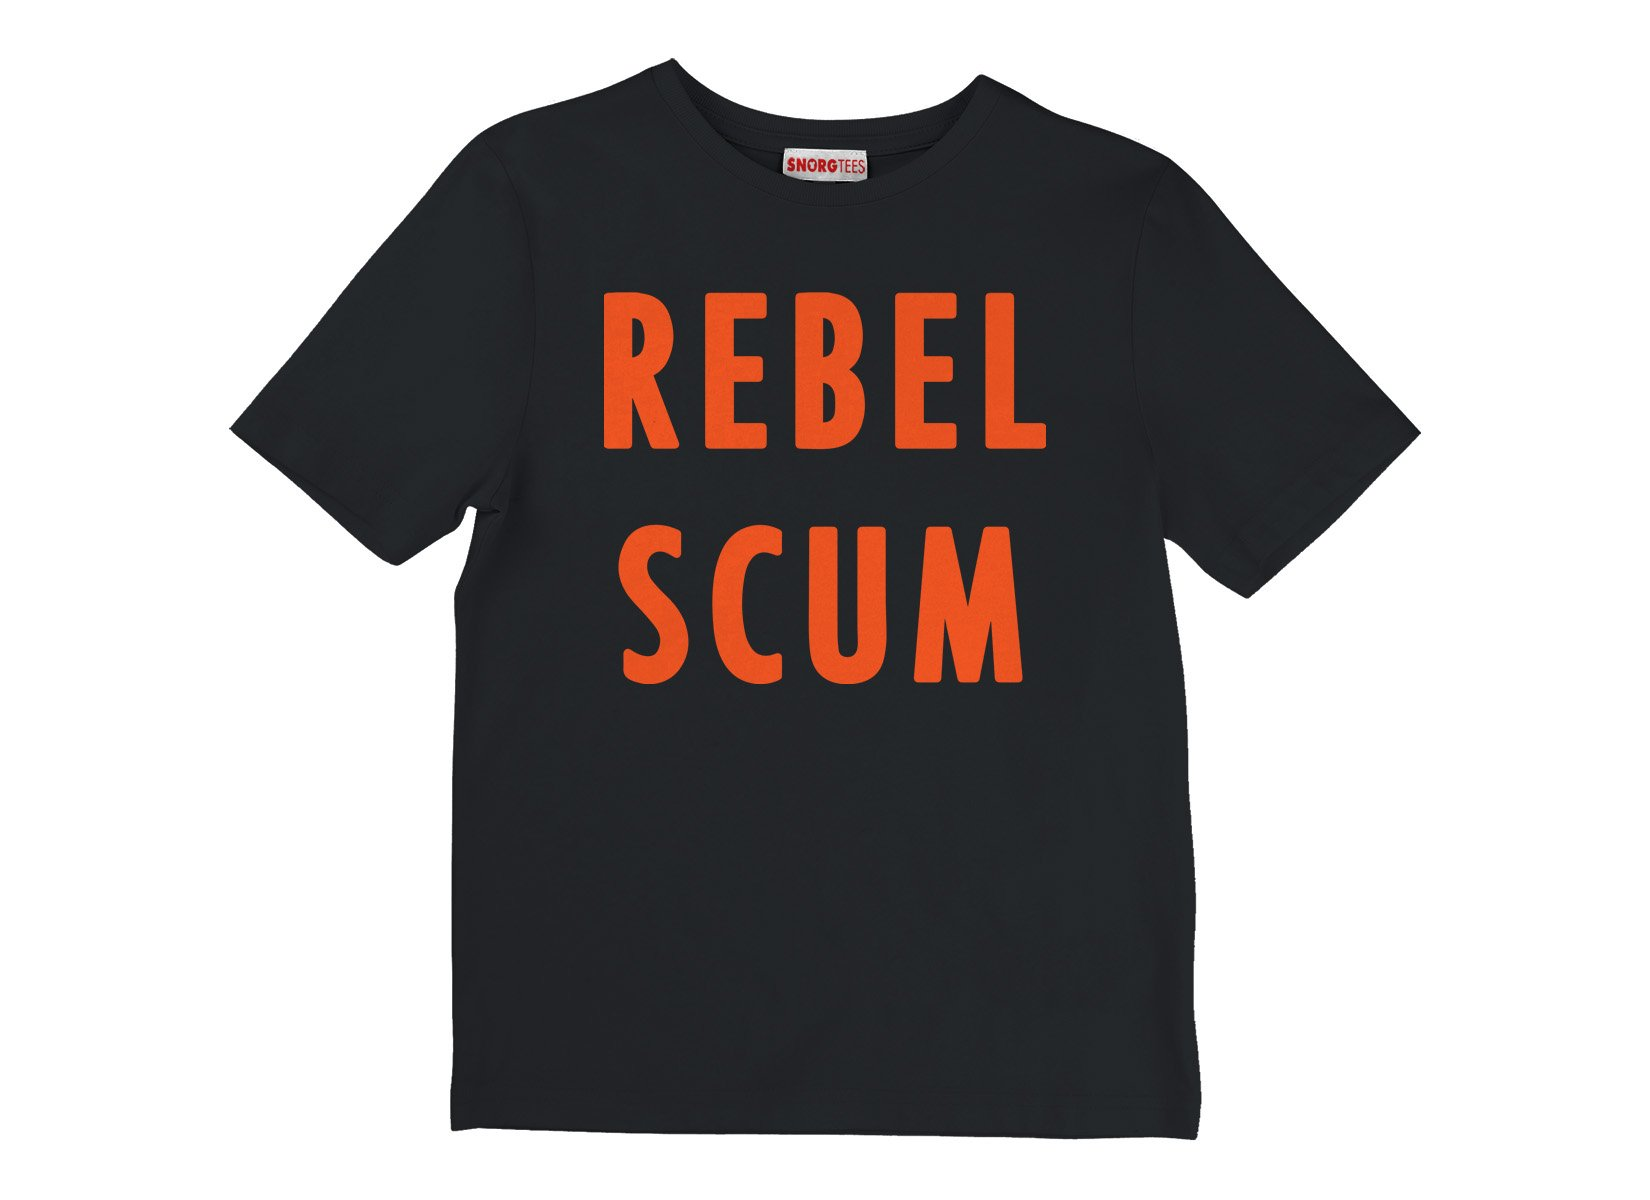 Rebel Scum on Kids T-Shirt